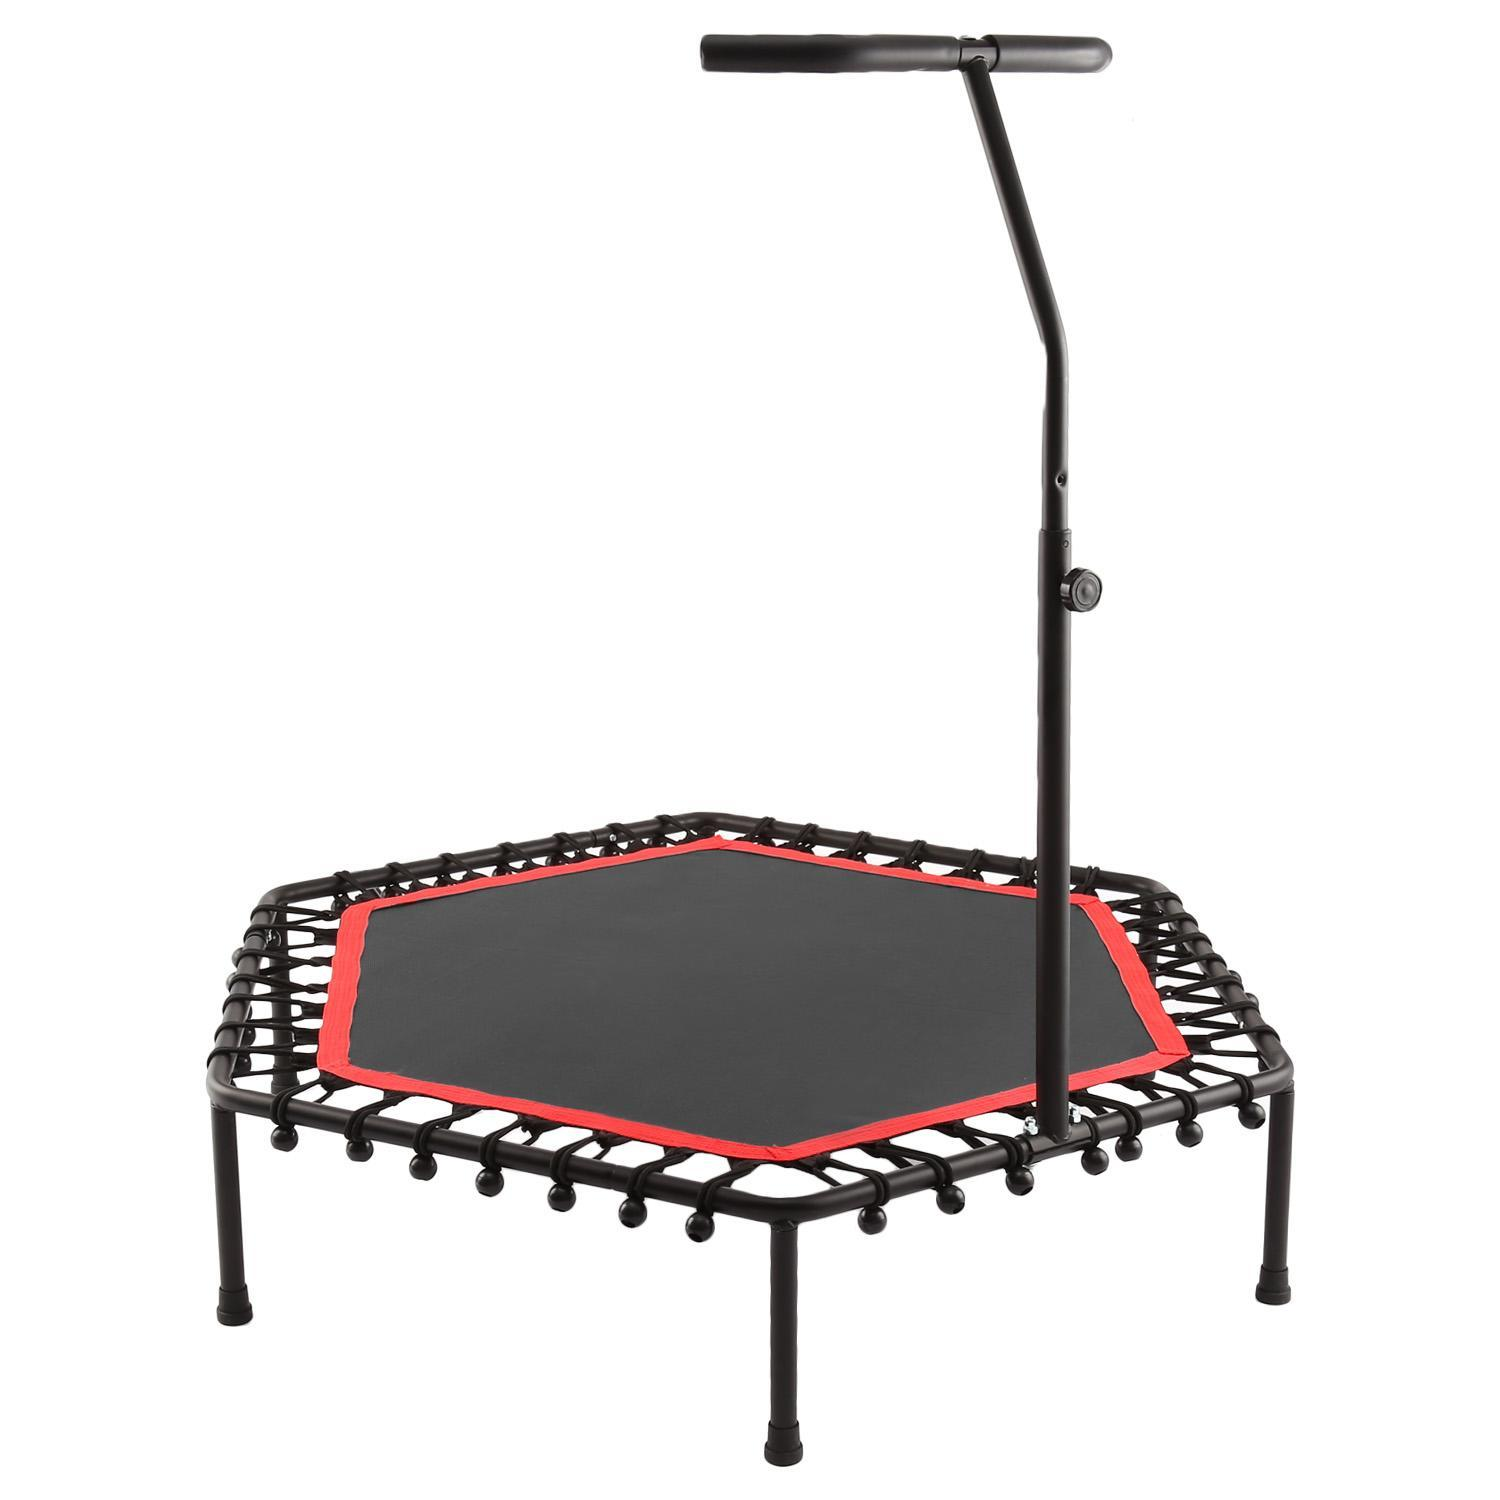 Exercise Trampoline for Kids Adults Indoor//Garden Workout Fitness Rebounder with Suction Cap Feet and Adjustable Foam Handle Kicode 50 Foldable Mini Trampoline